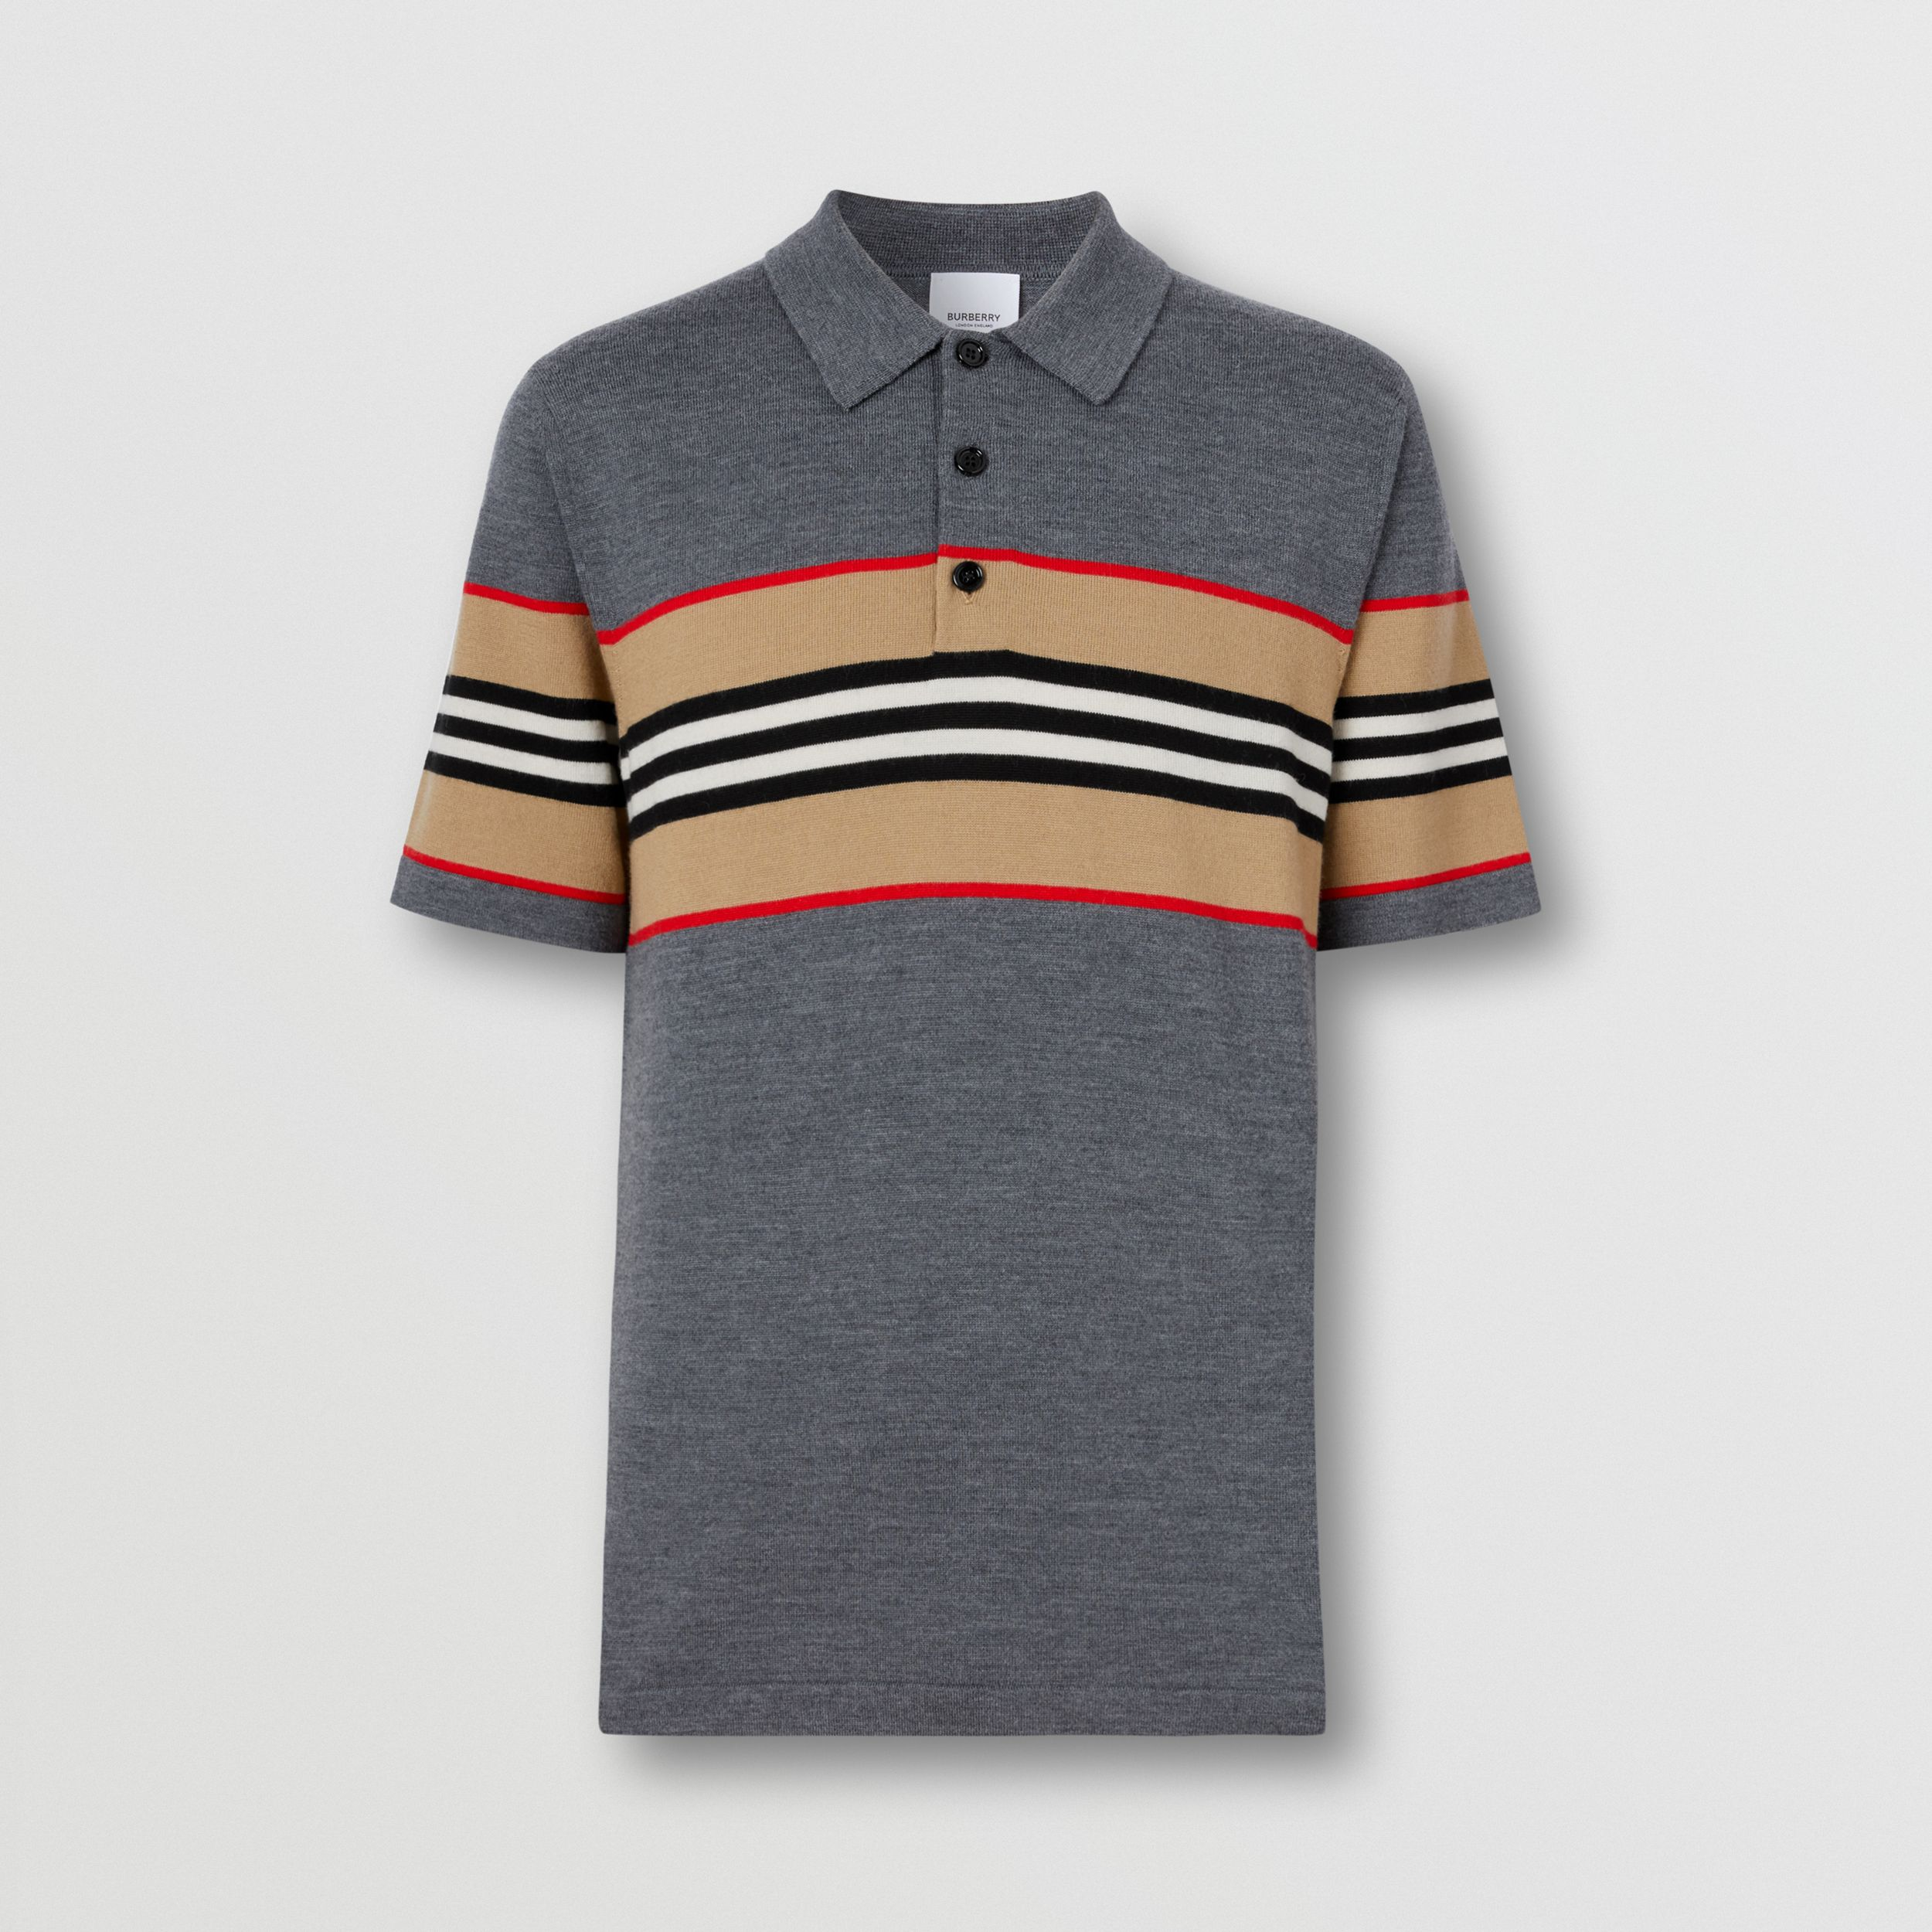 Icon Stripe Detail Merino Wool Polo Shirt in Dark Grey Melange - Men | Burberry - 4